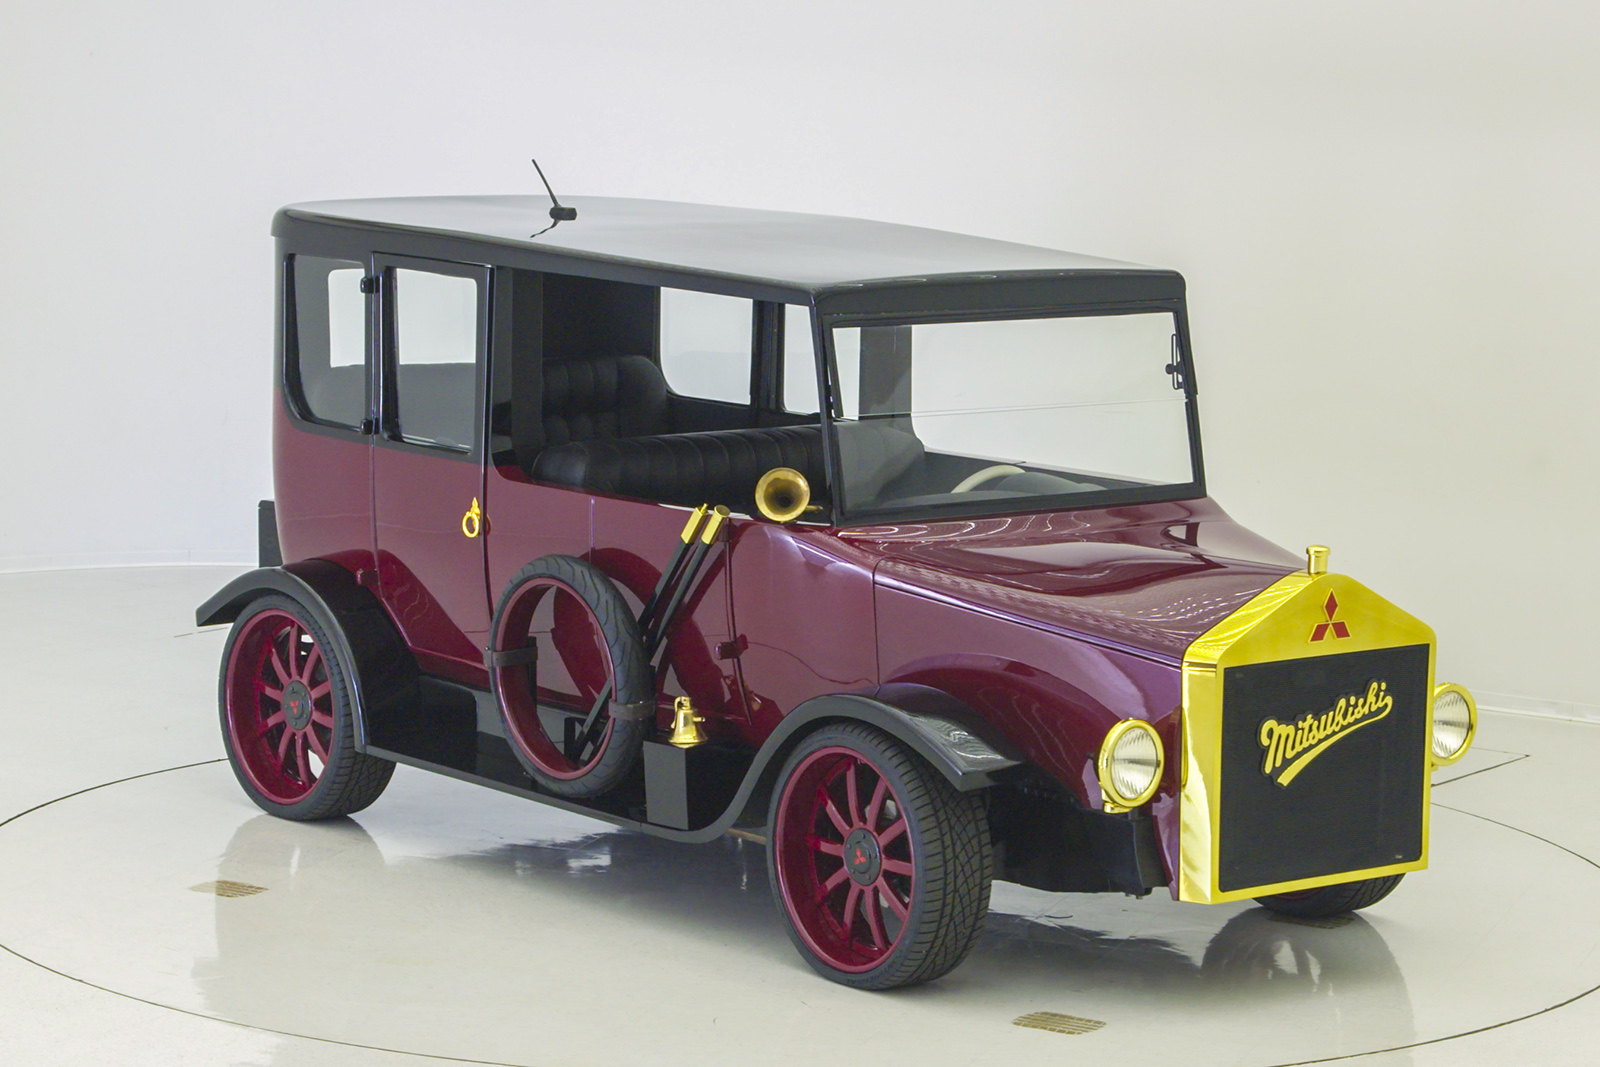 Perhaps The Worst Part Is Original Model A In These Photos Also Replica Proving That Faithful Recreation Can Be Done